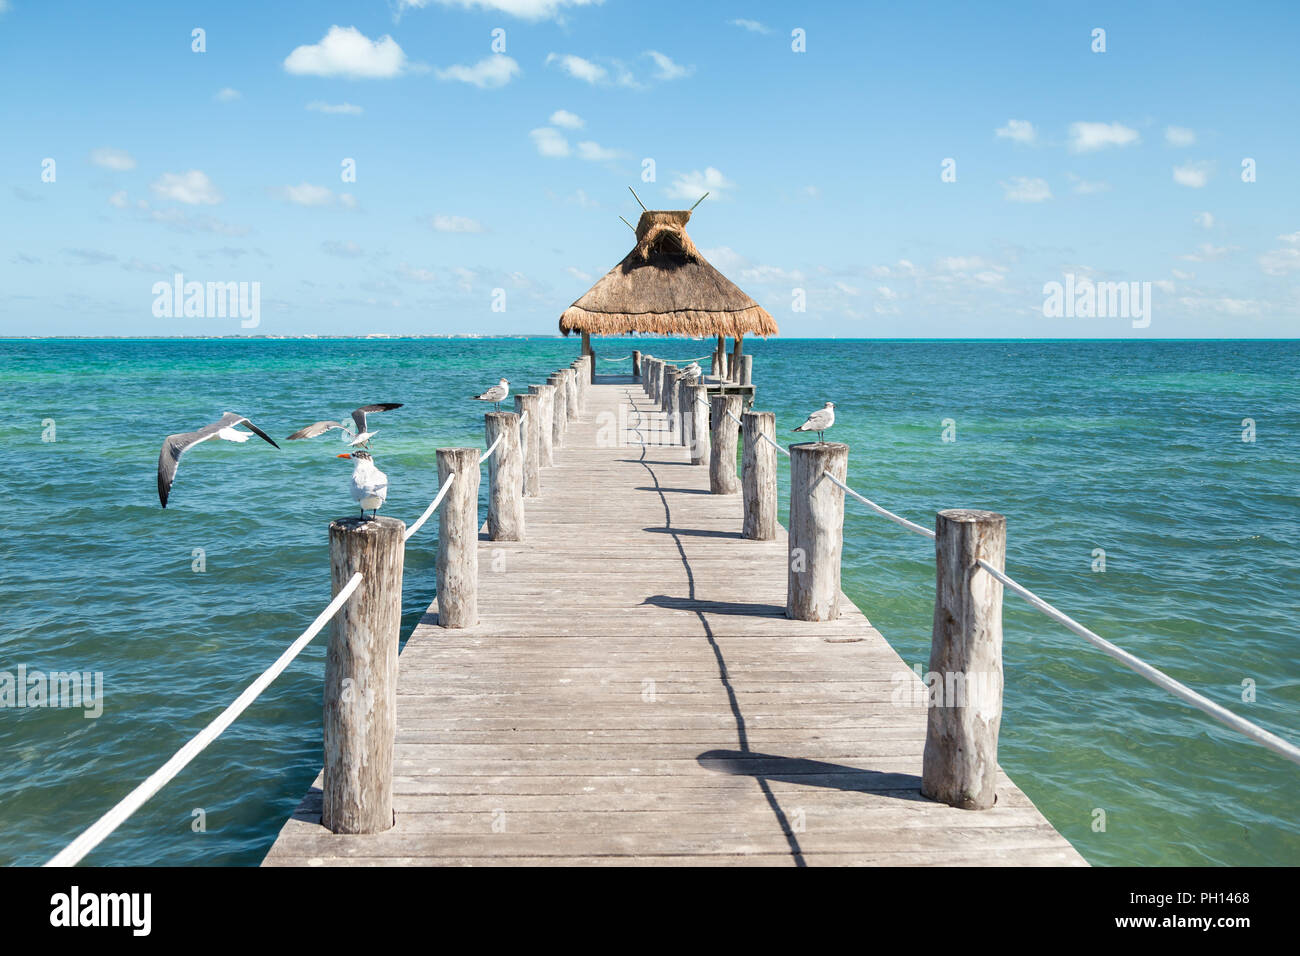 Ocean view from a pier with seagulls perched on either side of it and a grass roof at the end. - Stock Image